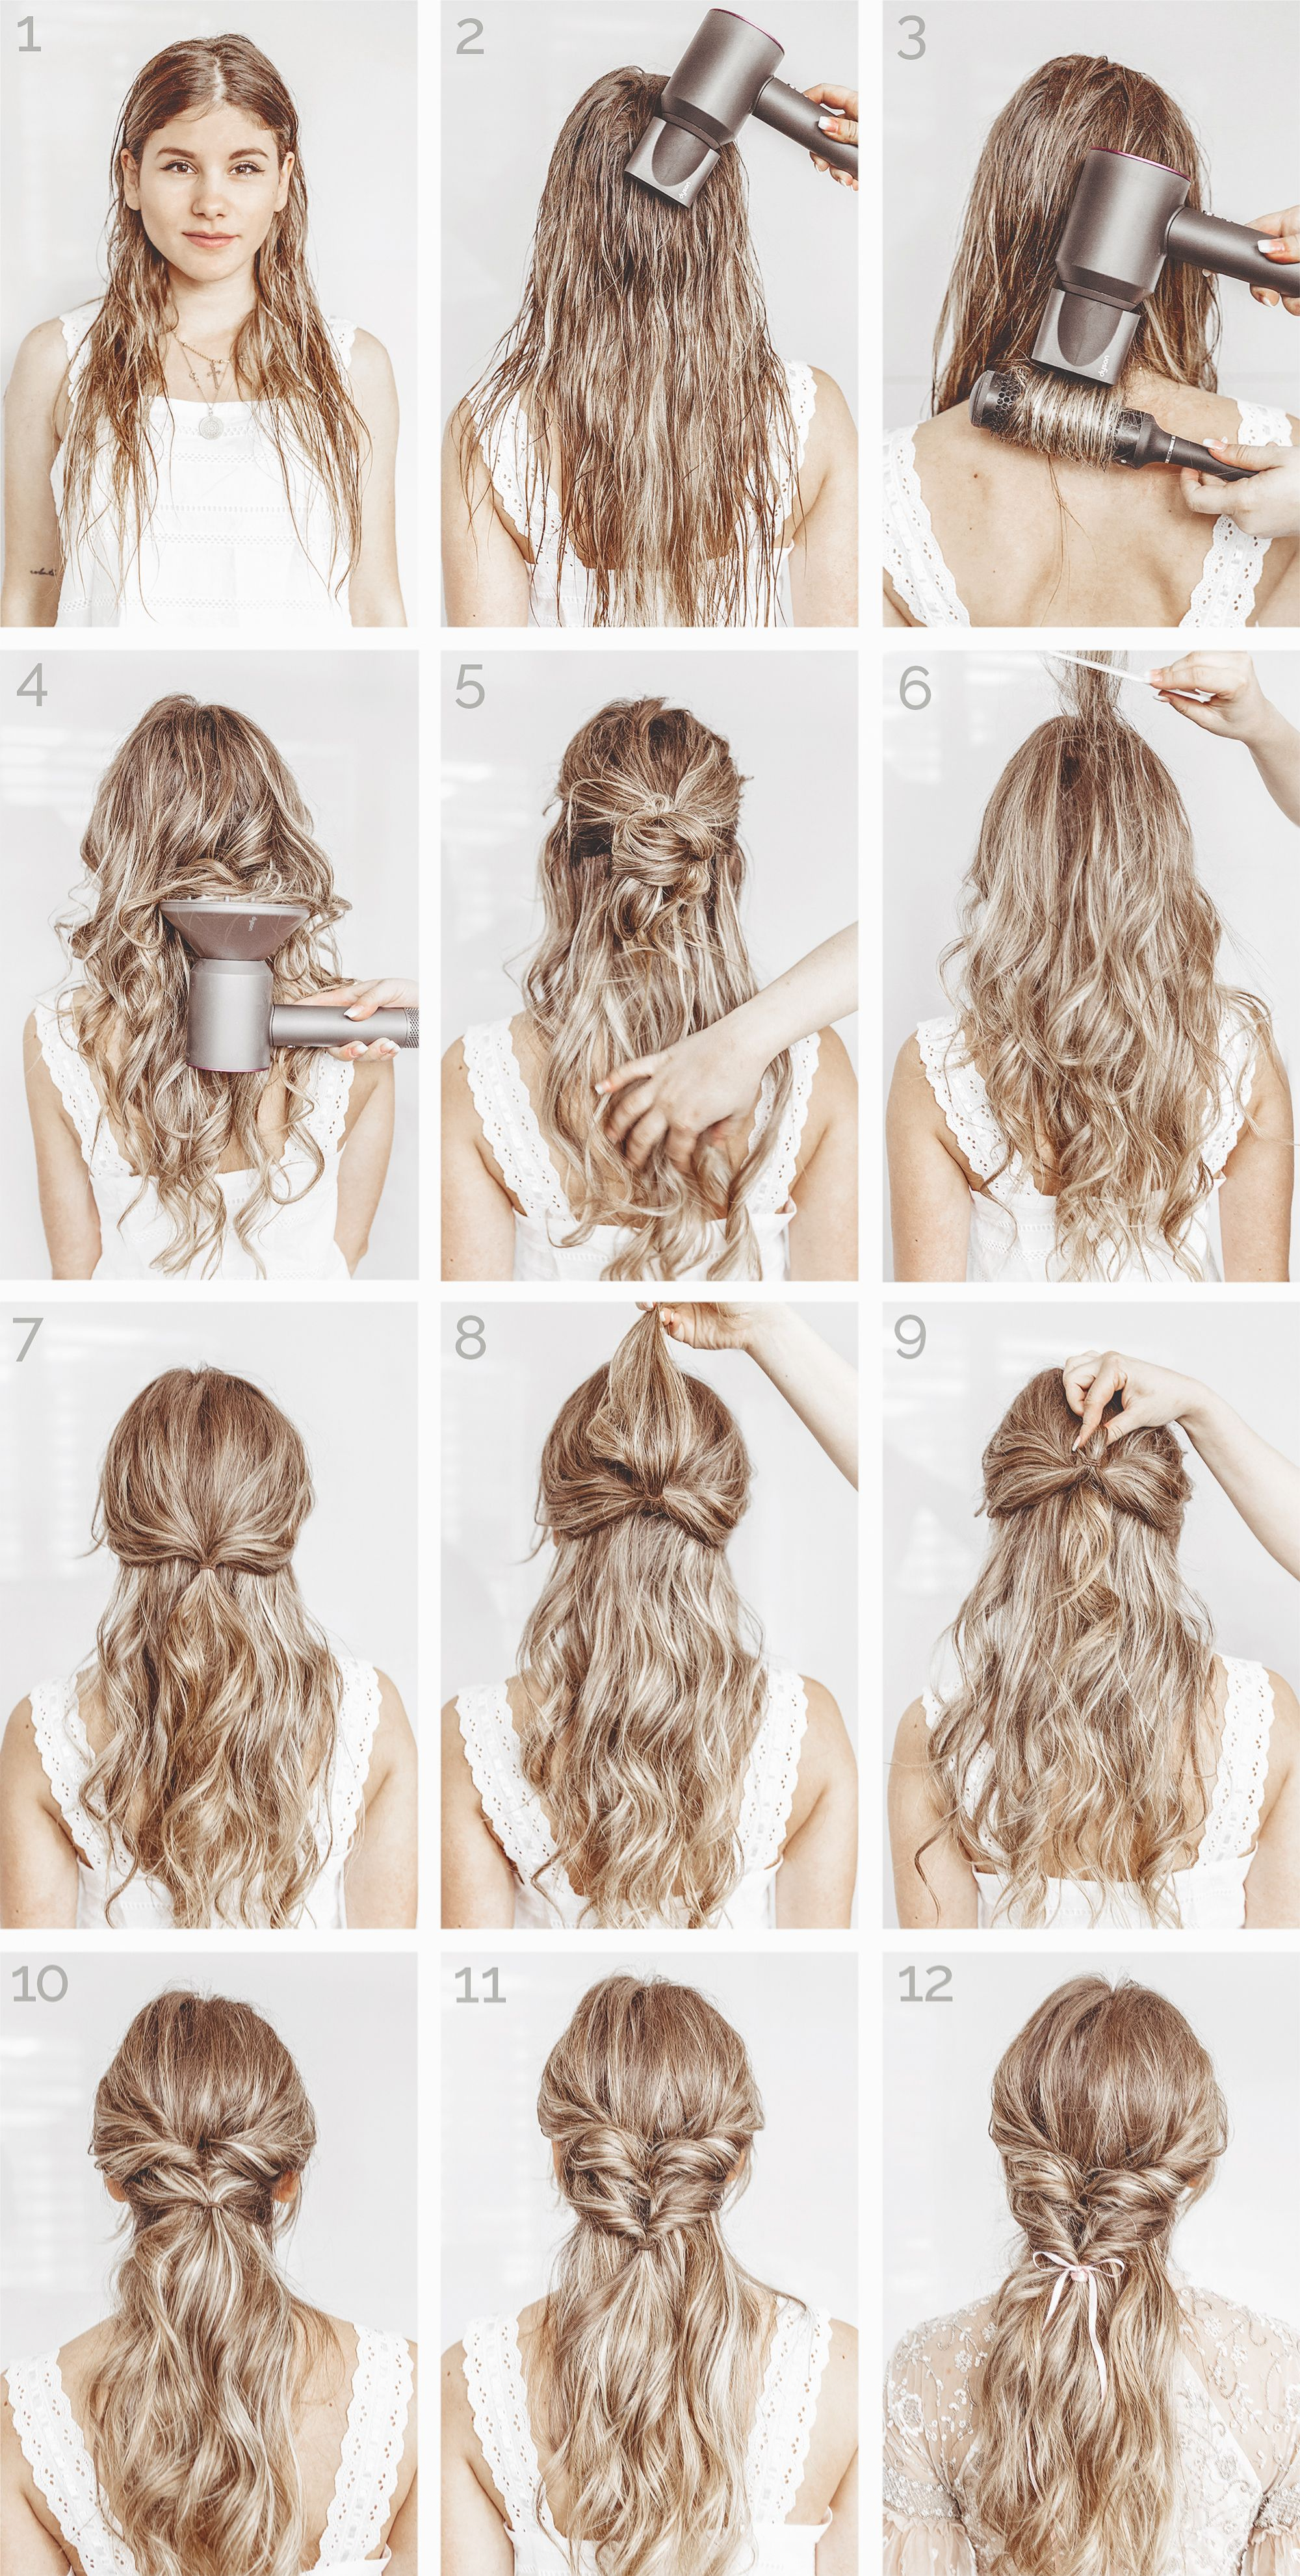 5 Minute Tutorial: Elegant Hairstyle